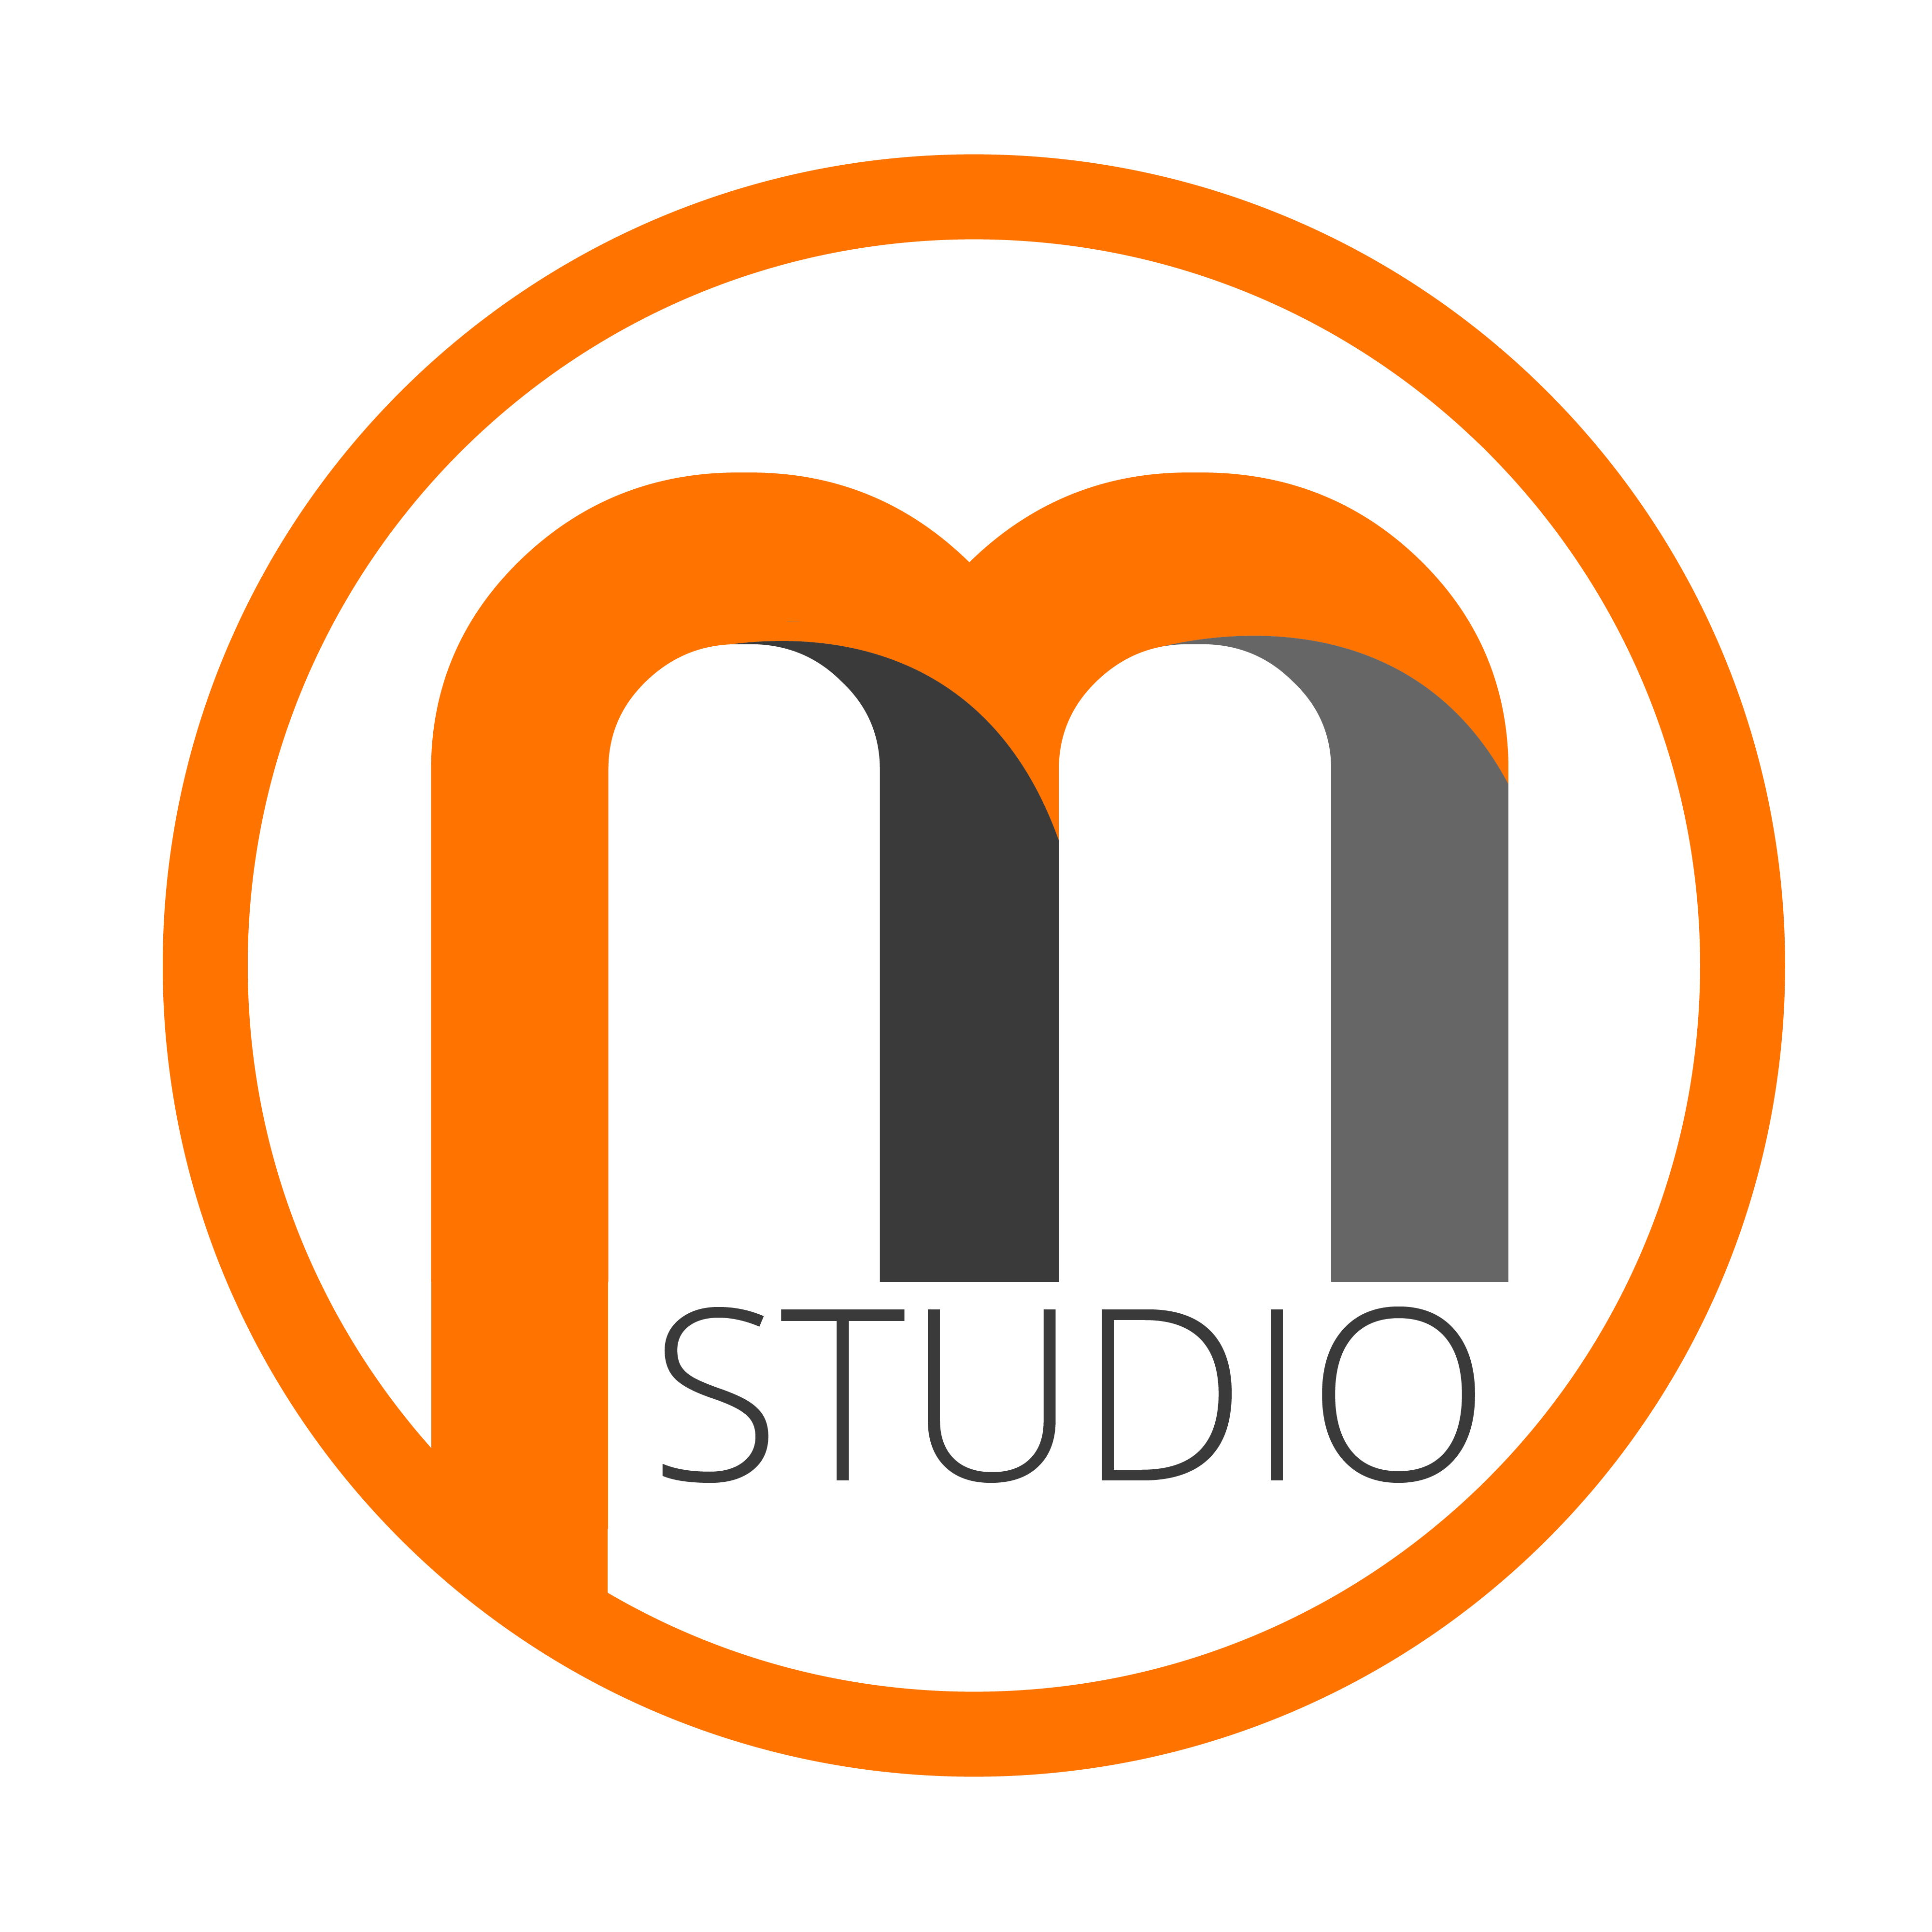 Photography brand photo studio. Logo m png picture transparent download